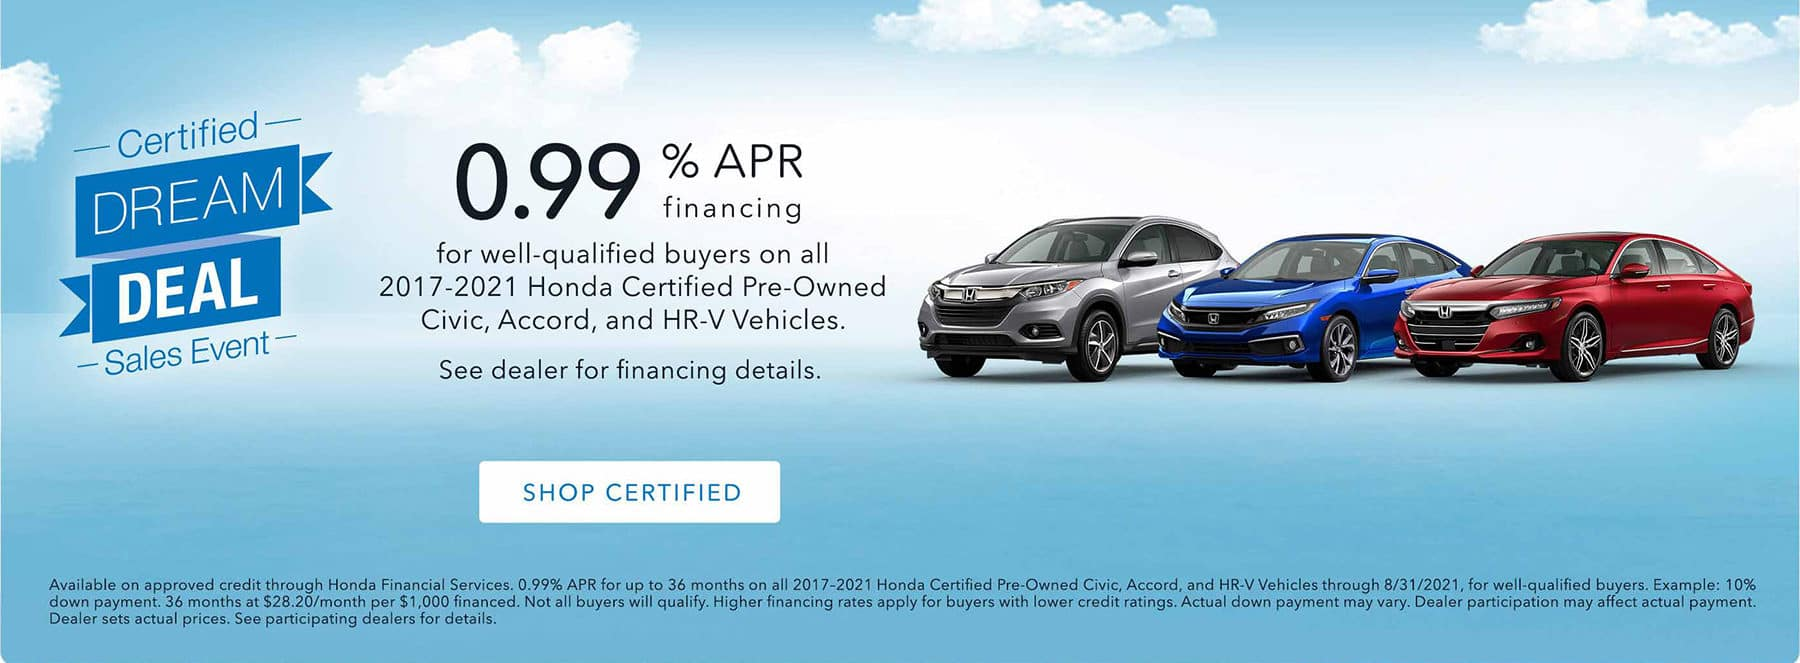 Certified Pre-Owned Financing as low as 0.99% APR on select Certified Pre-Owned Honda Vehicles